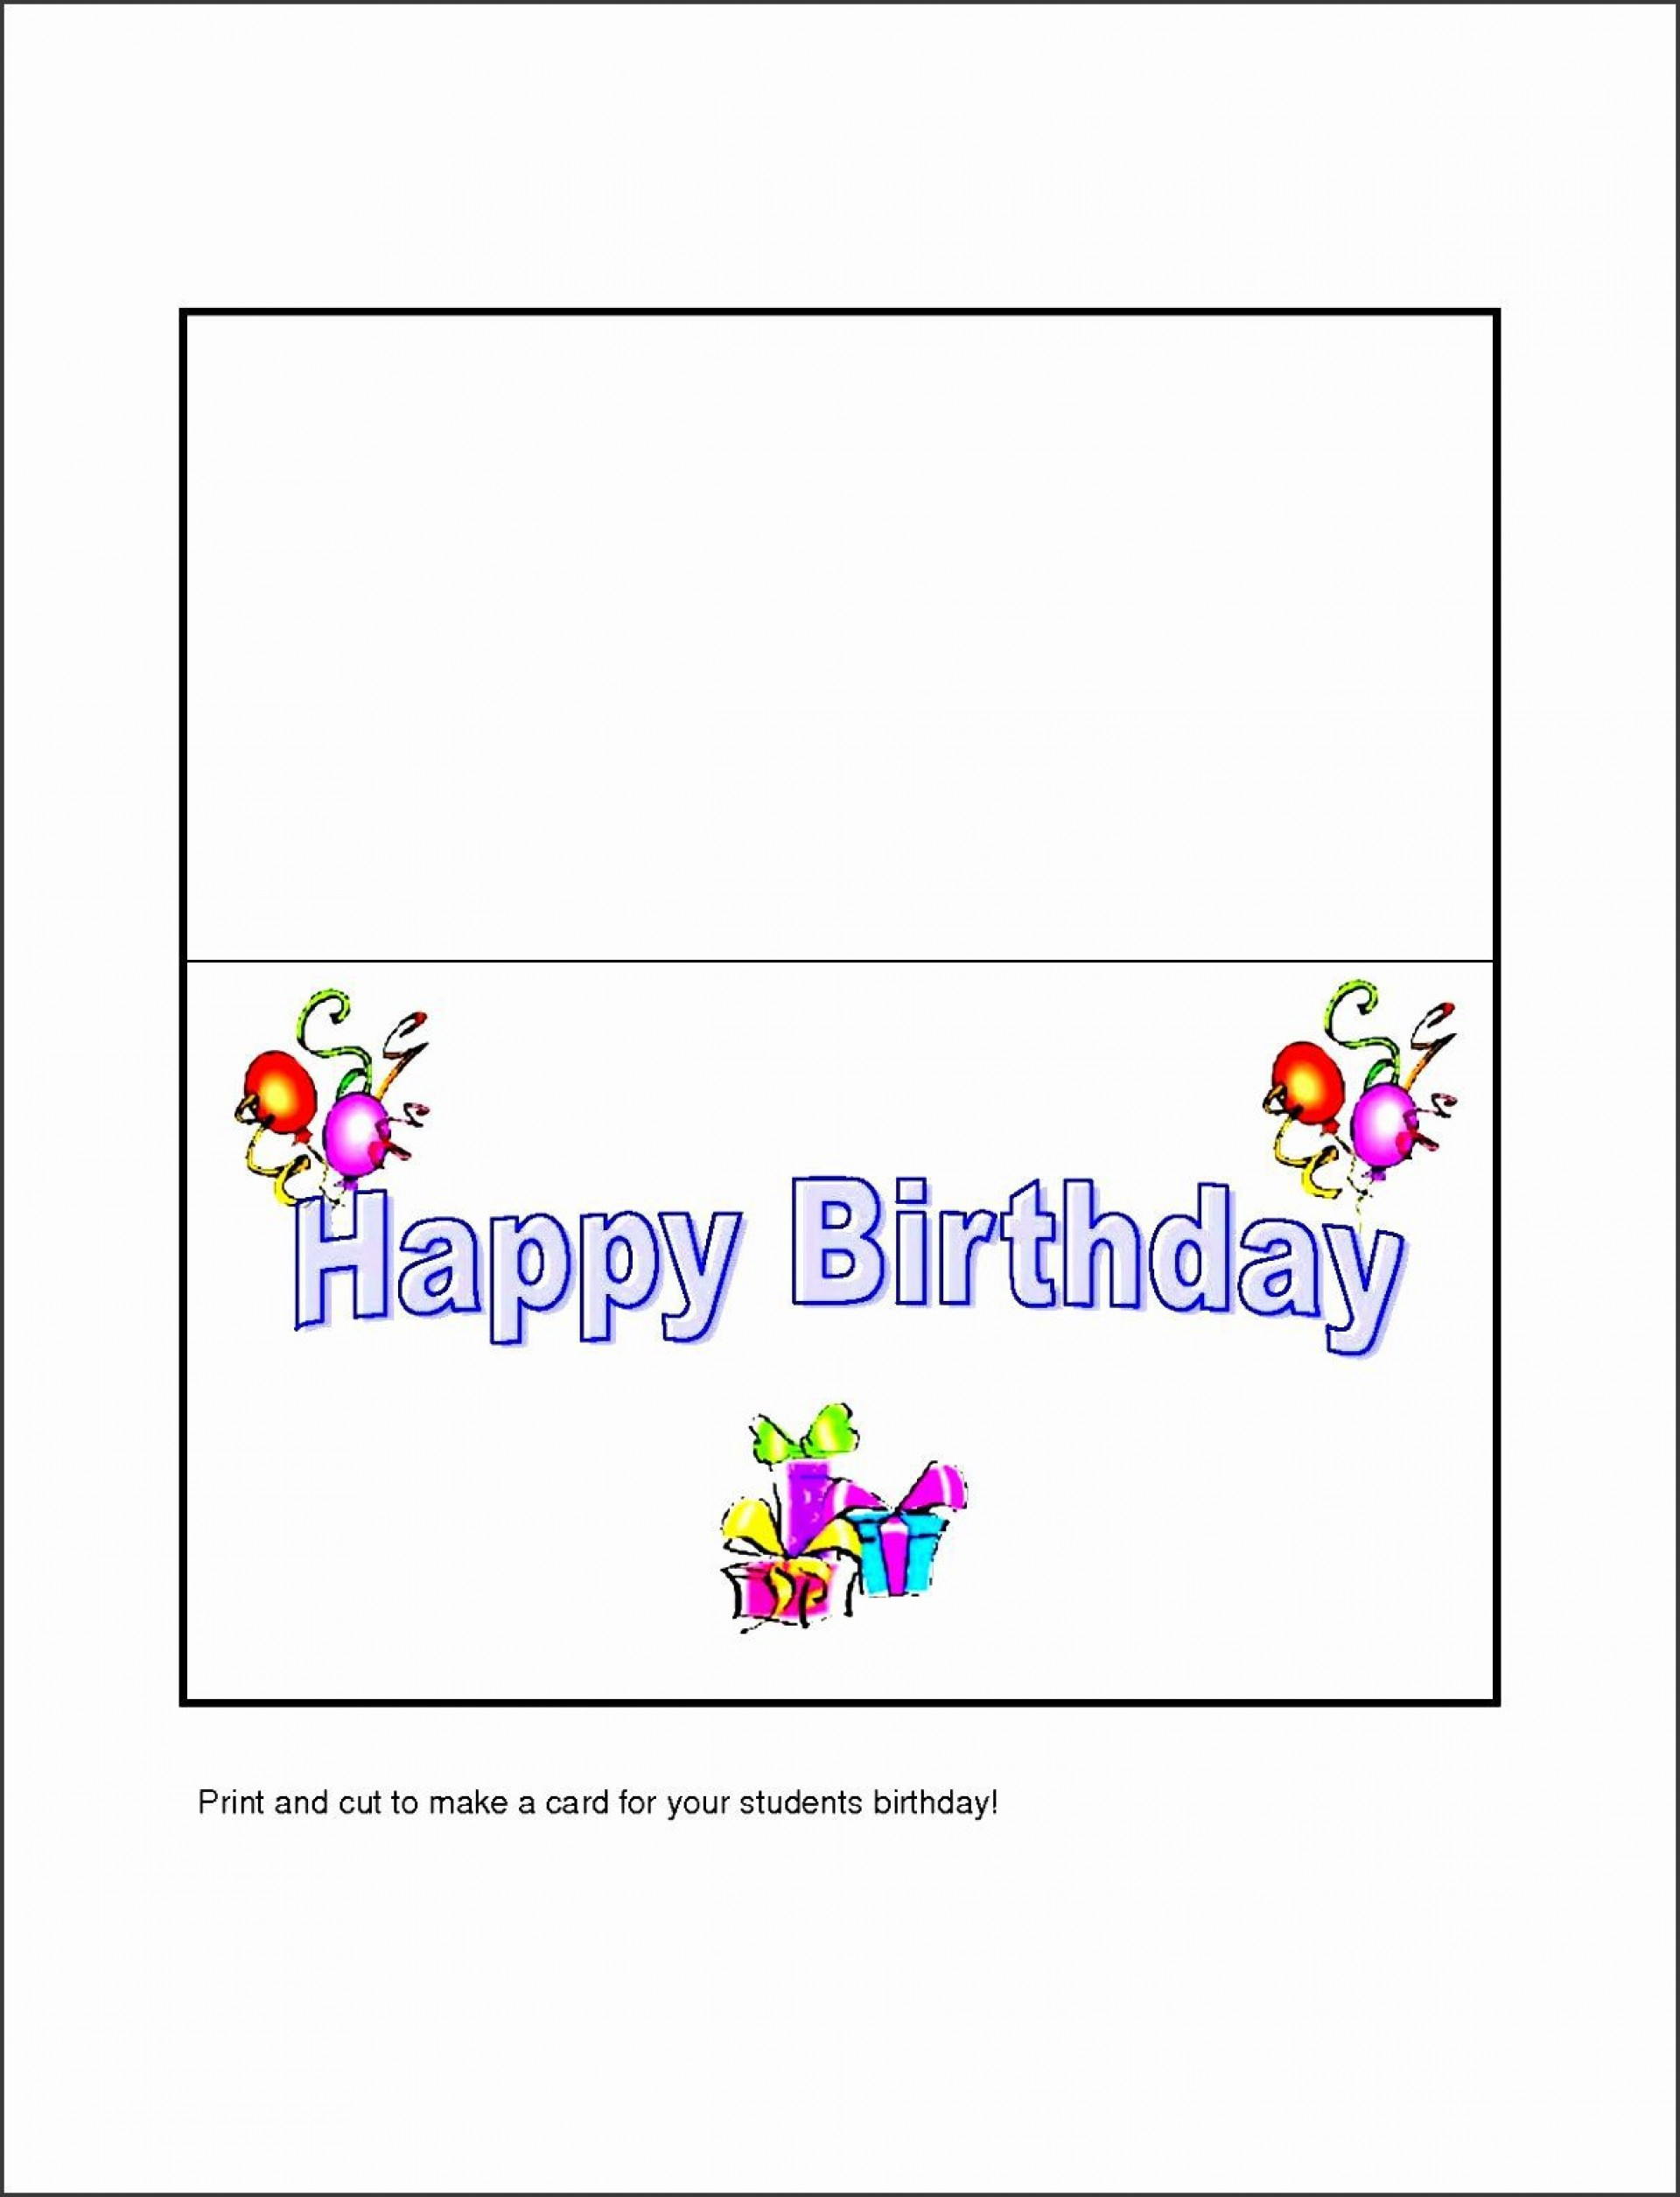 009 Top Microsoft Word Card Template Picture  Birthday Download Busines Free1920